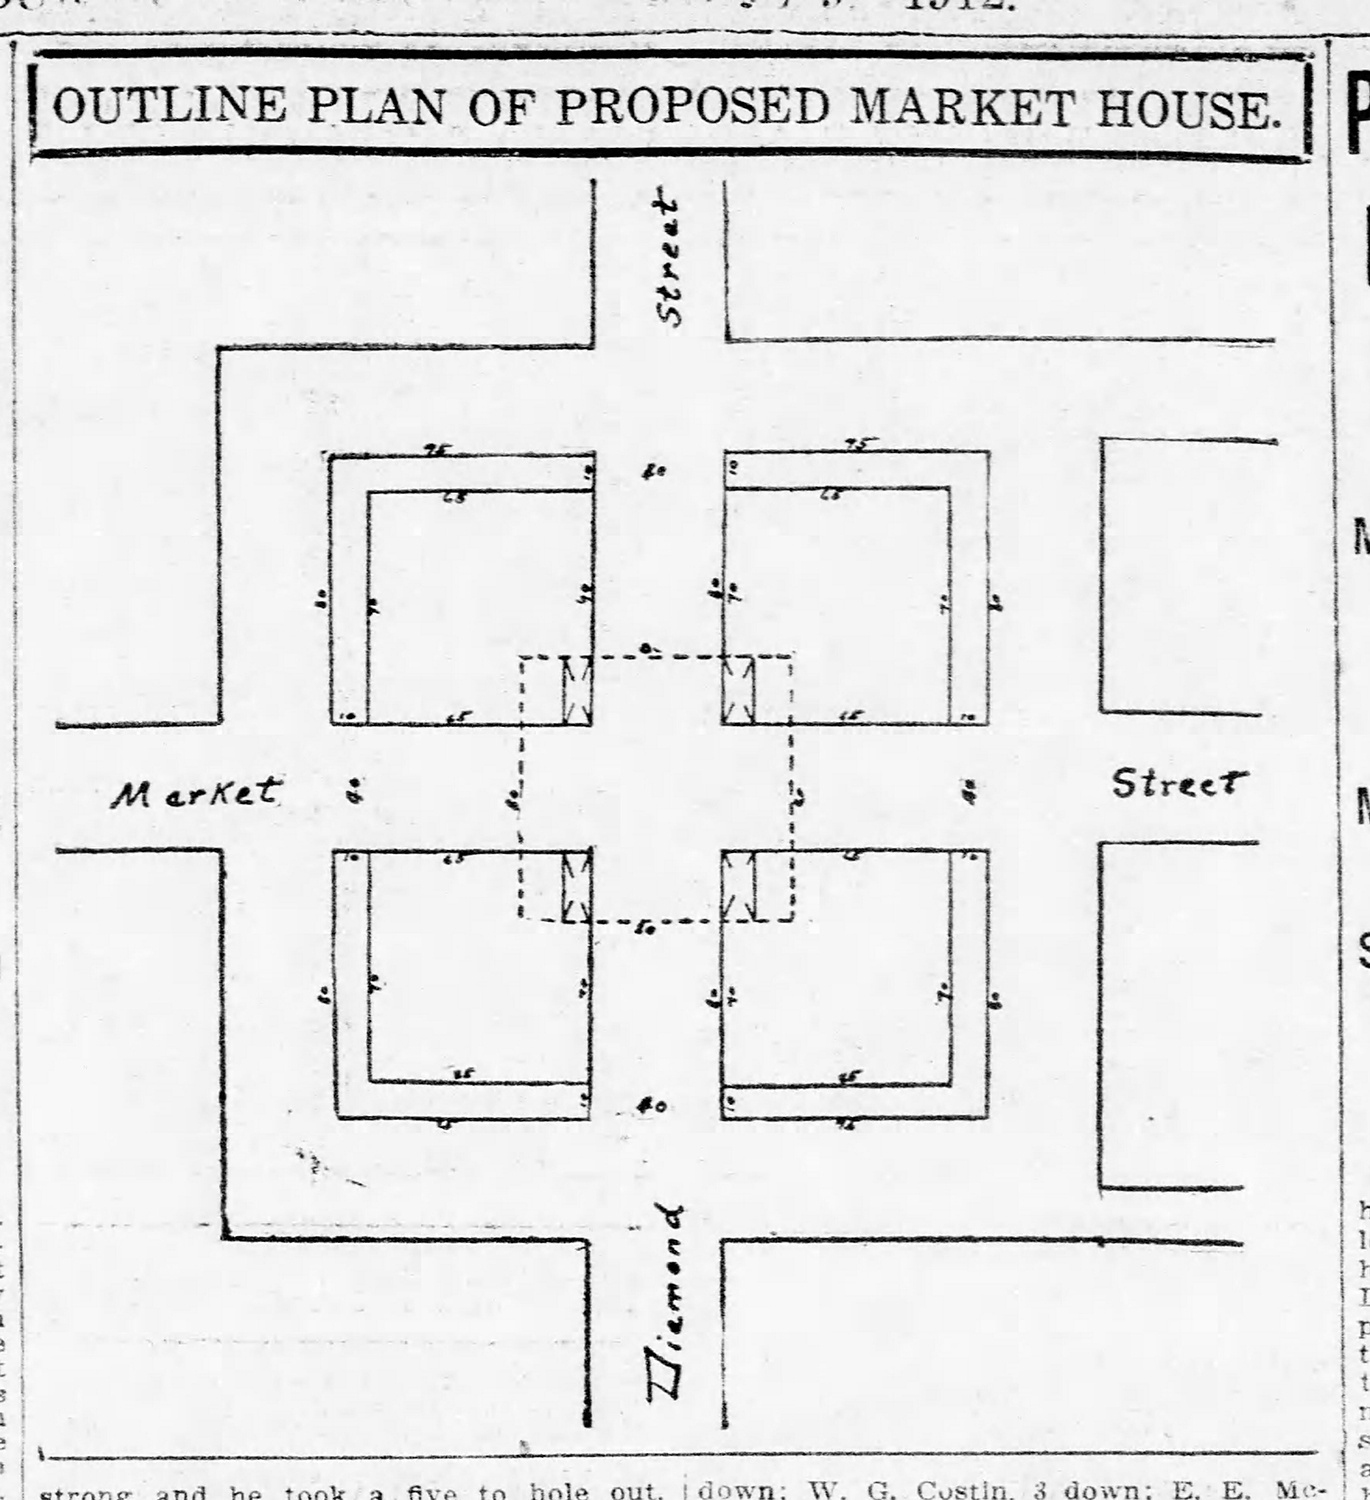 Outline Plan of Proposed Market House, 1912.